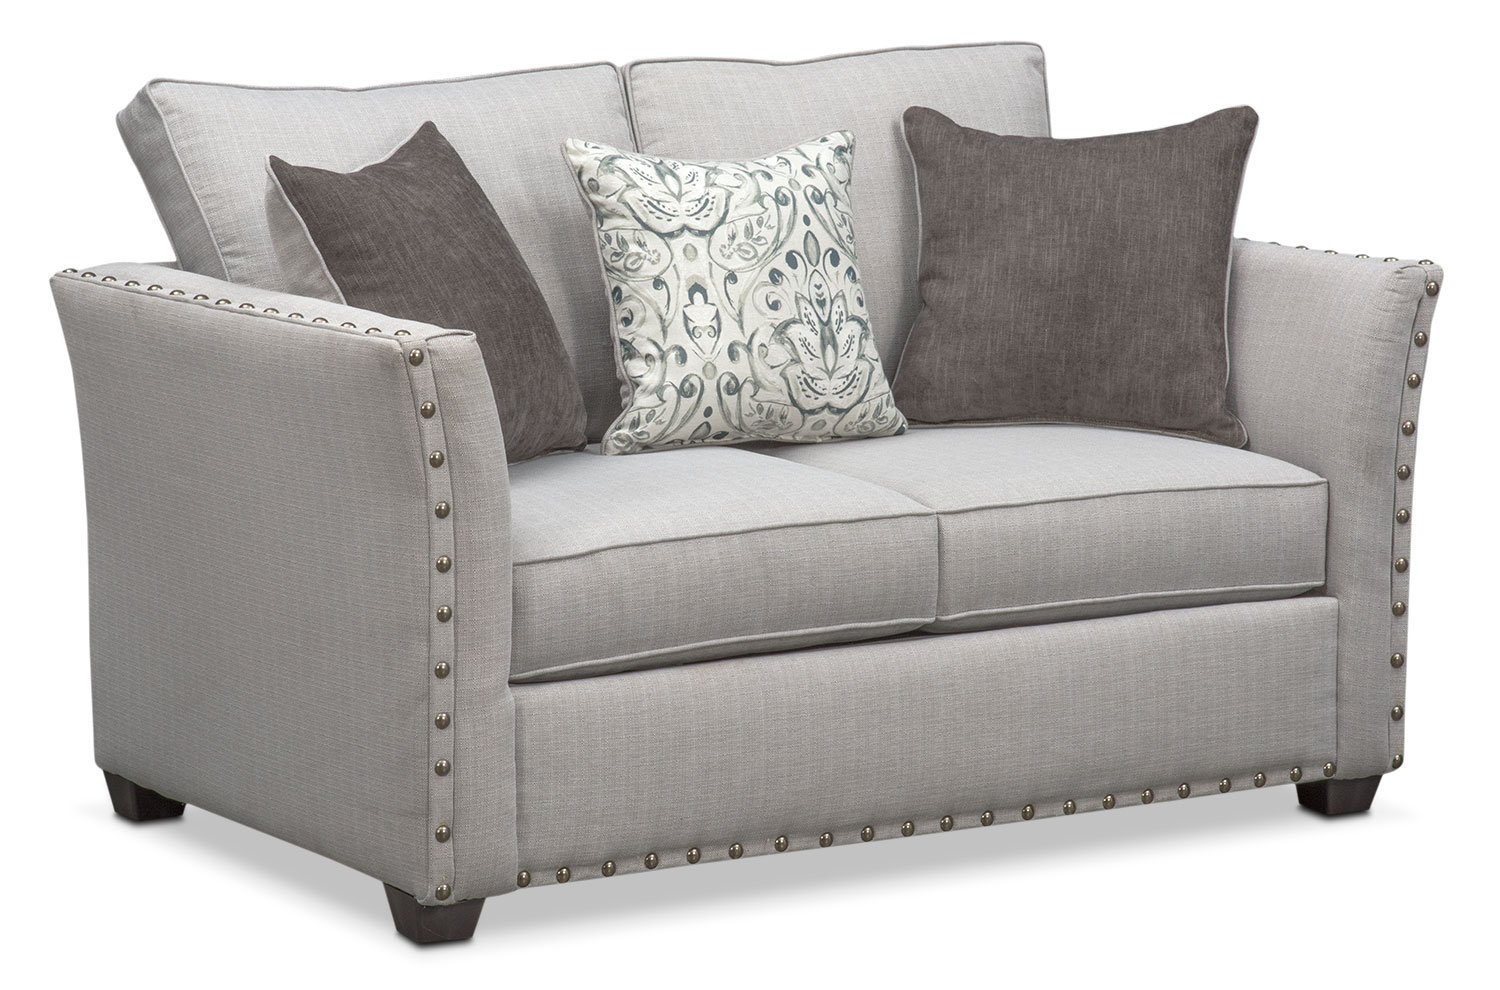 Living Room Furniture - Mckenna Loveseat - Pewter